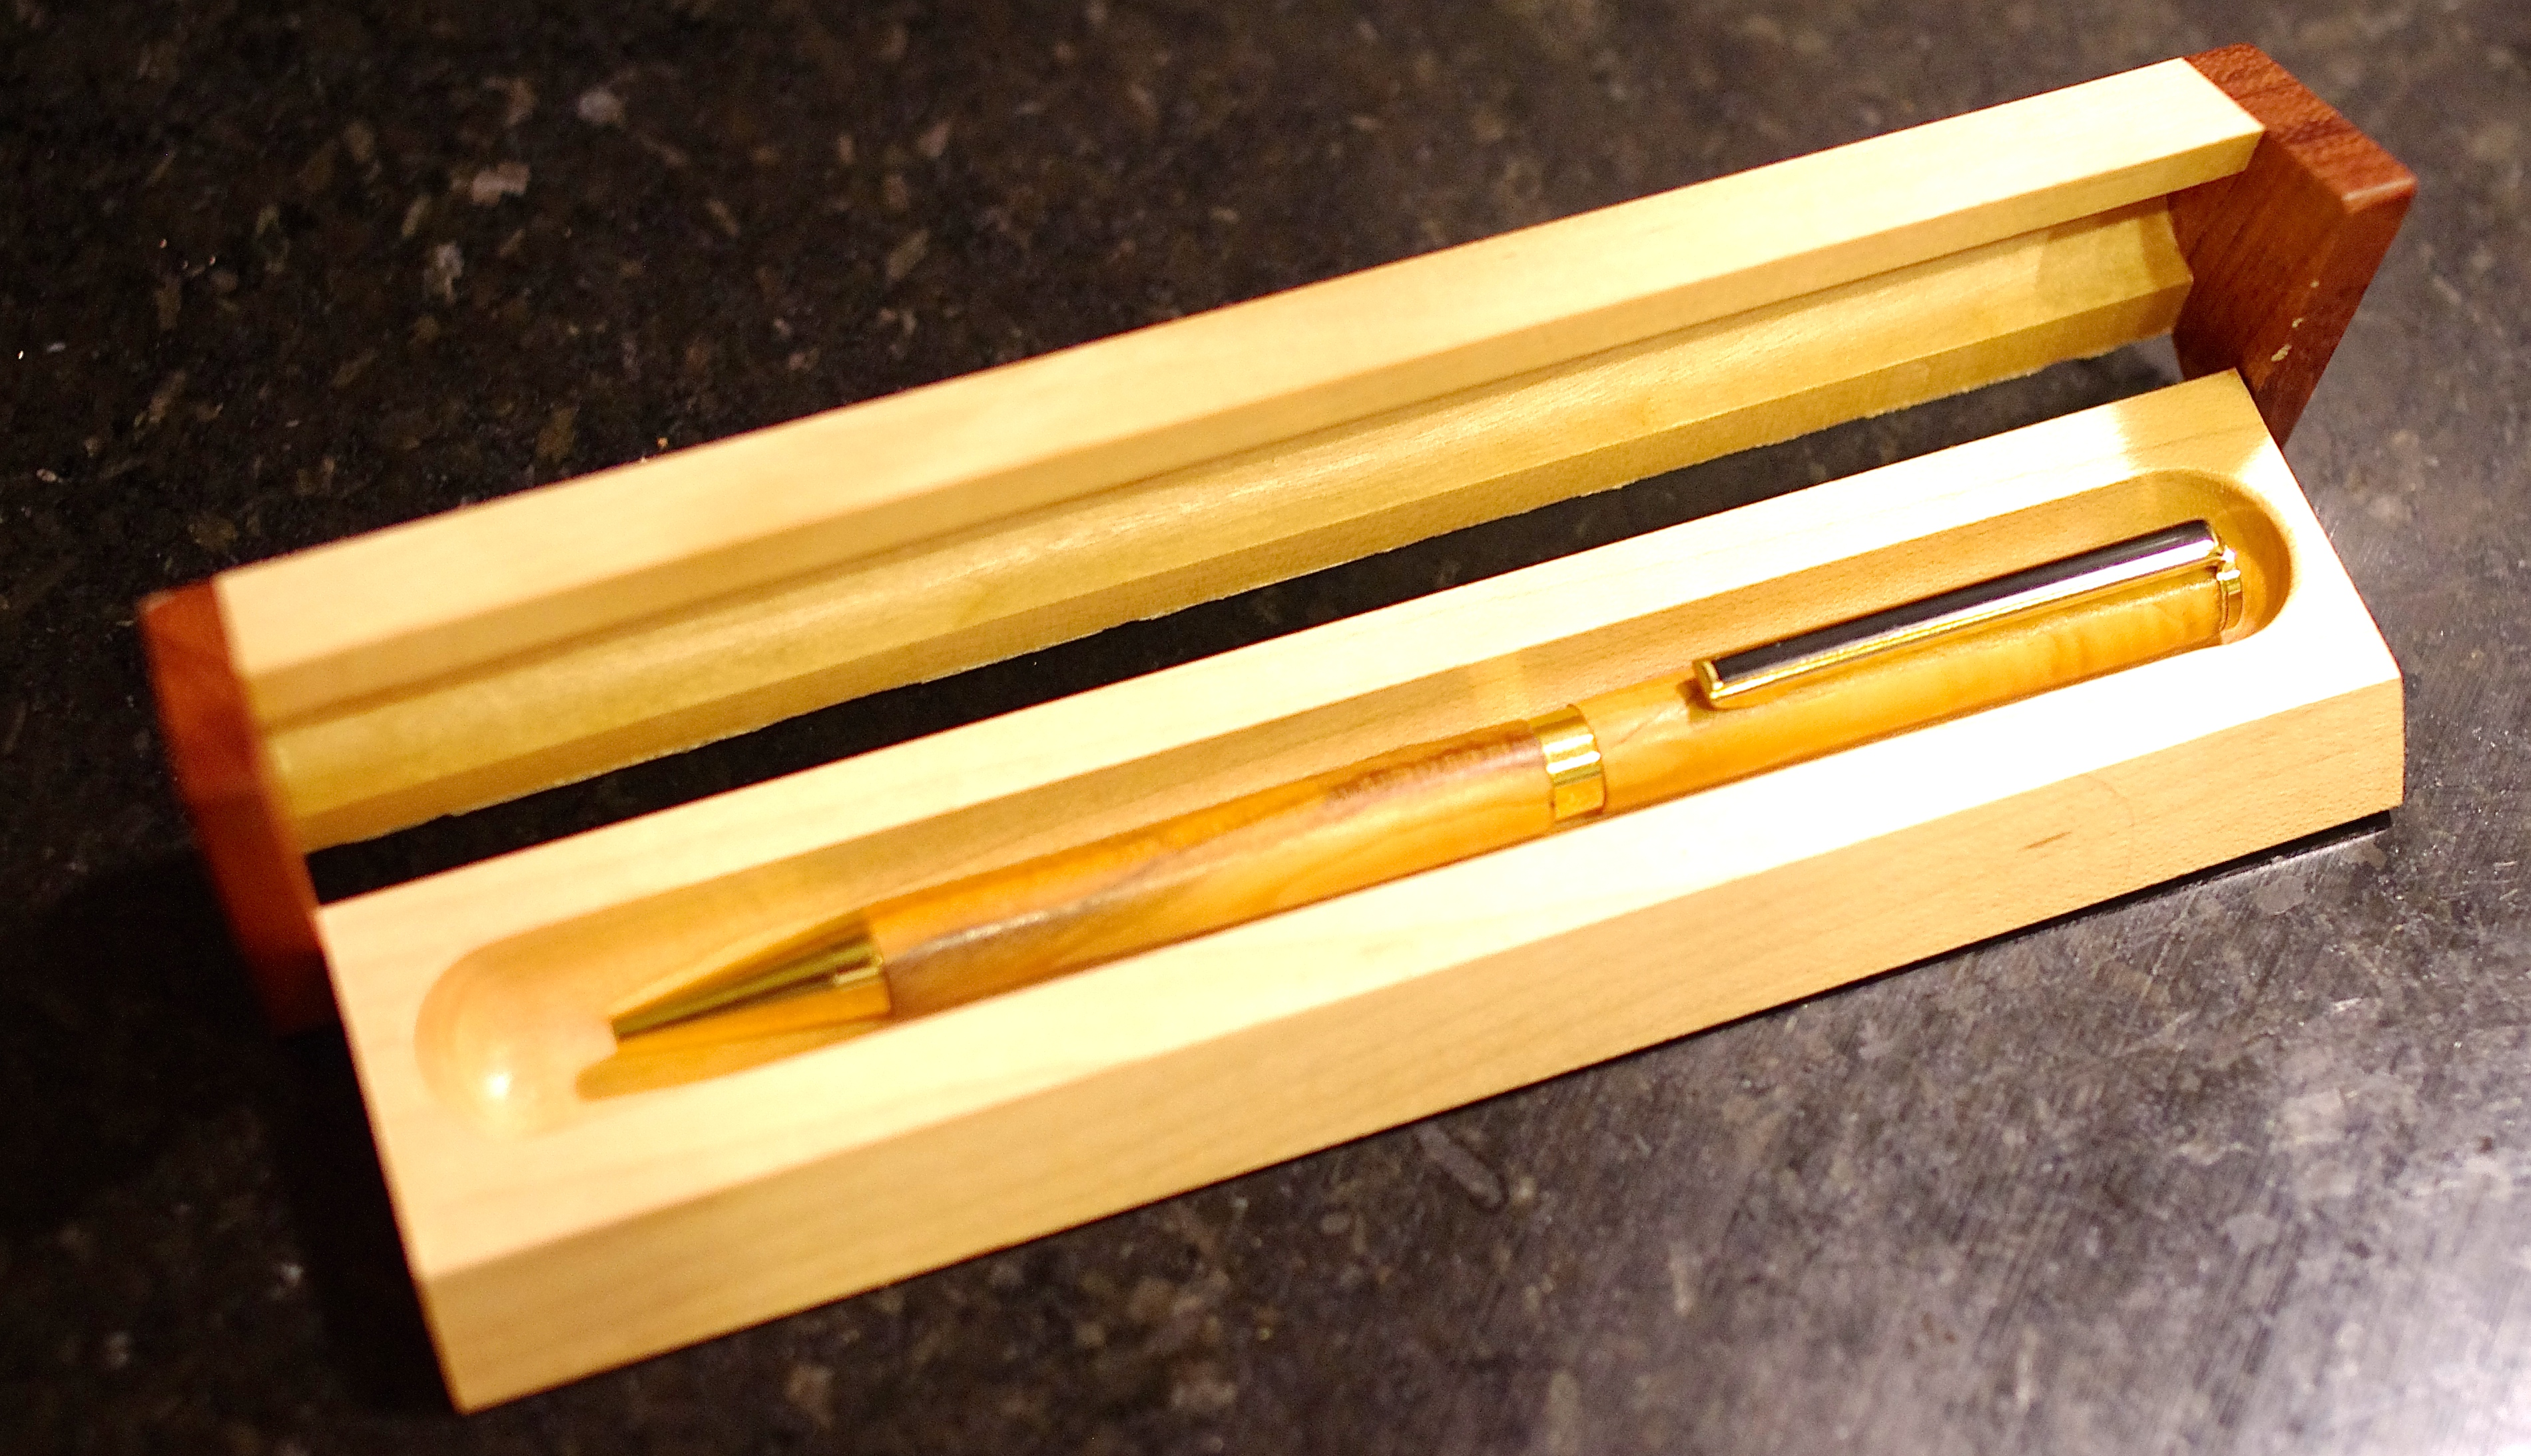 5th wedding anniversary gifts for husband 5th wedding anniversary forget that wood was the traditional gift for the 5th wedding anniversary so here is the stunning yew wood pen and gift box i bought for my husband